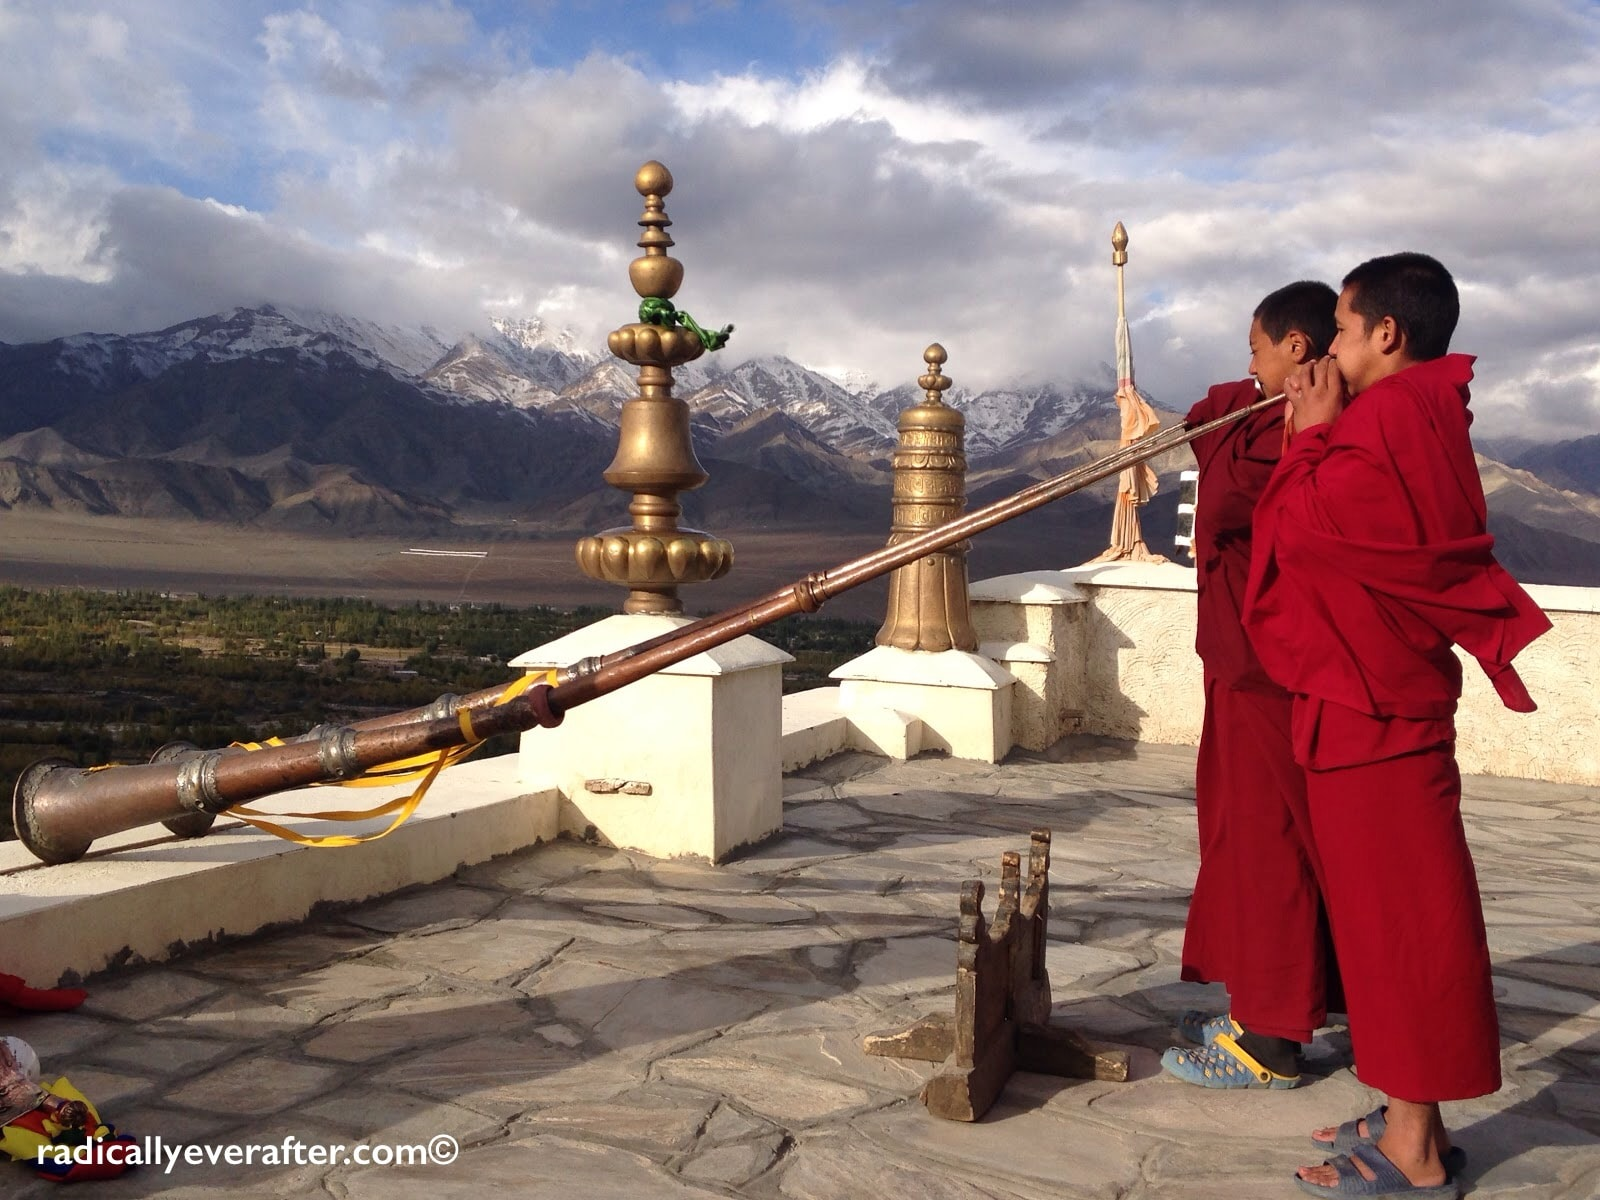 Thiksey monastery, morning call to prayer, monks, Himalayas, Leh